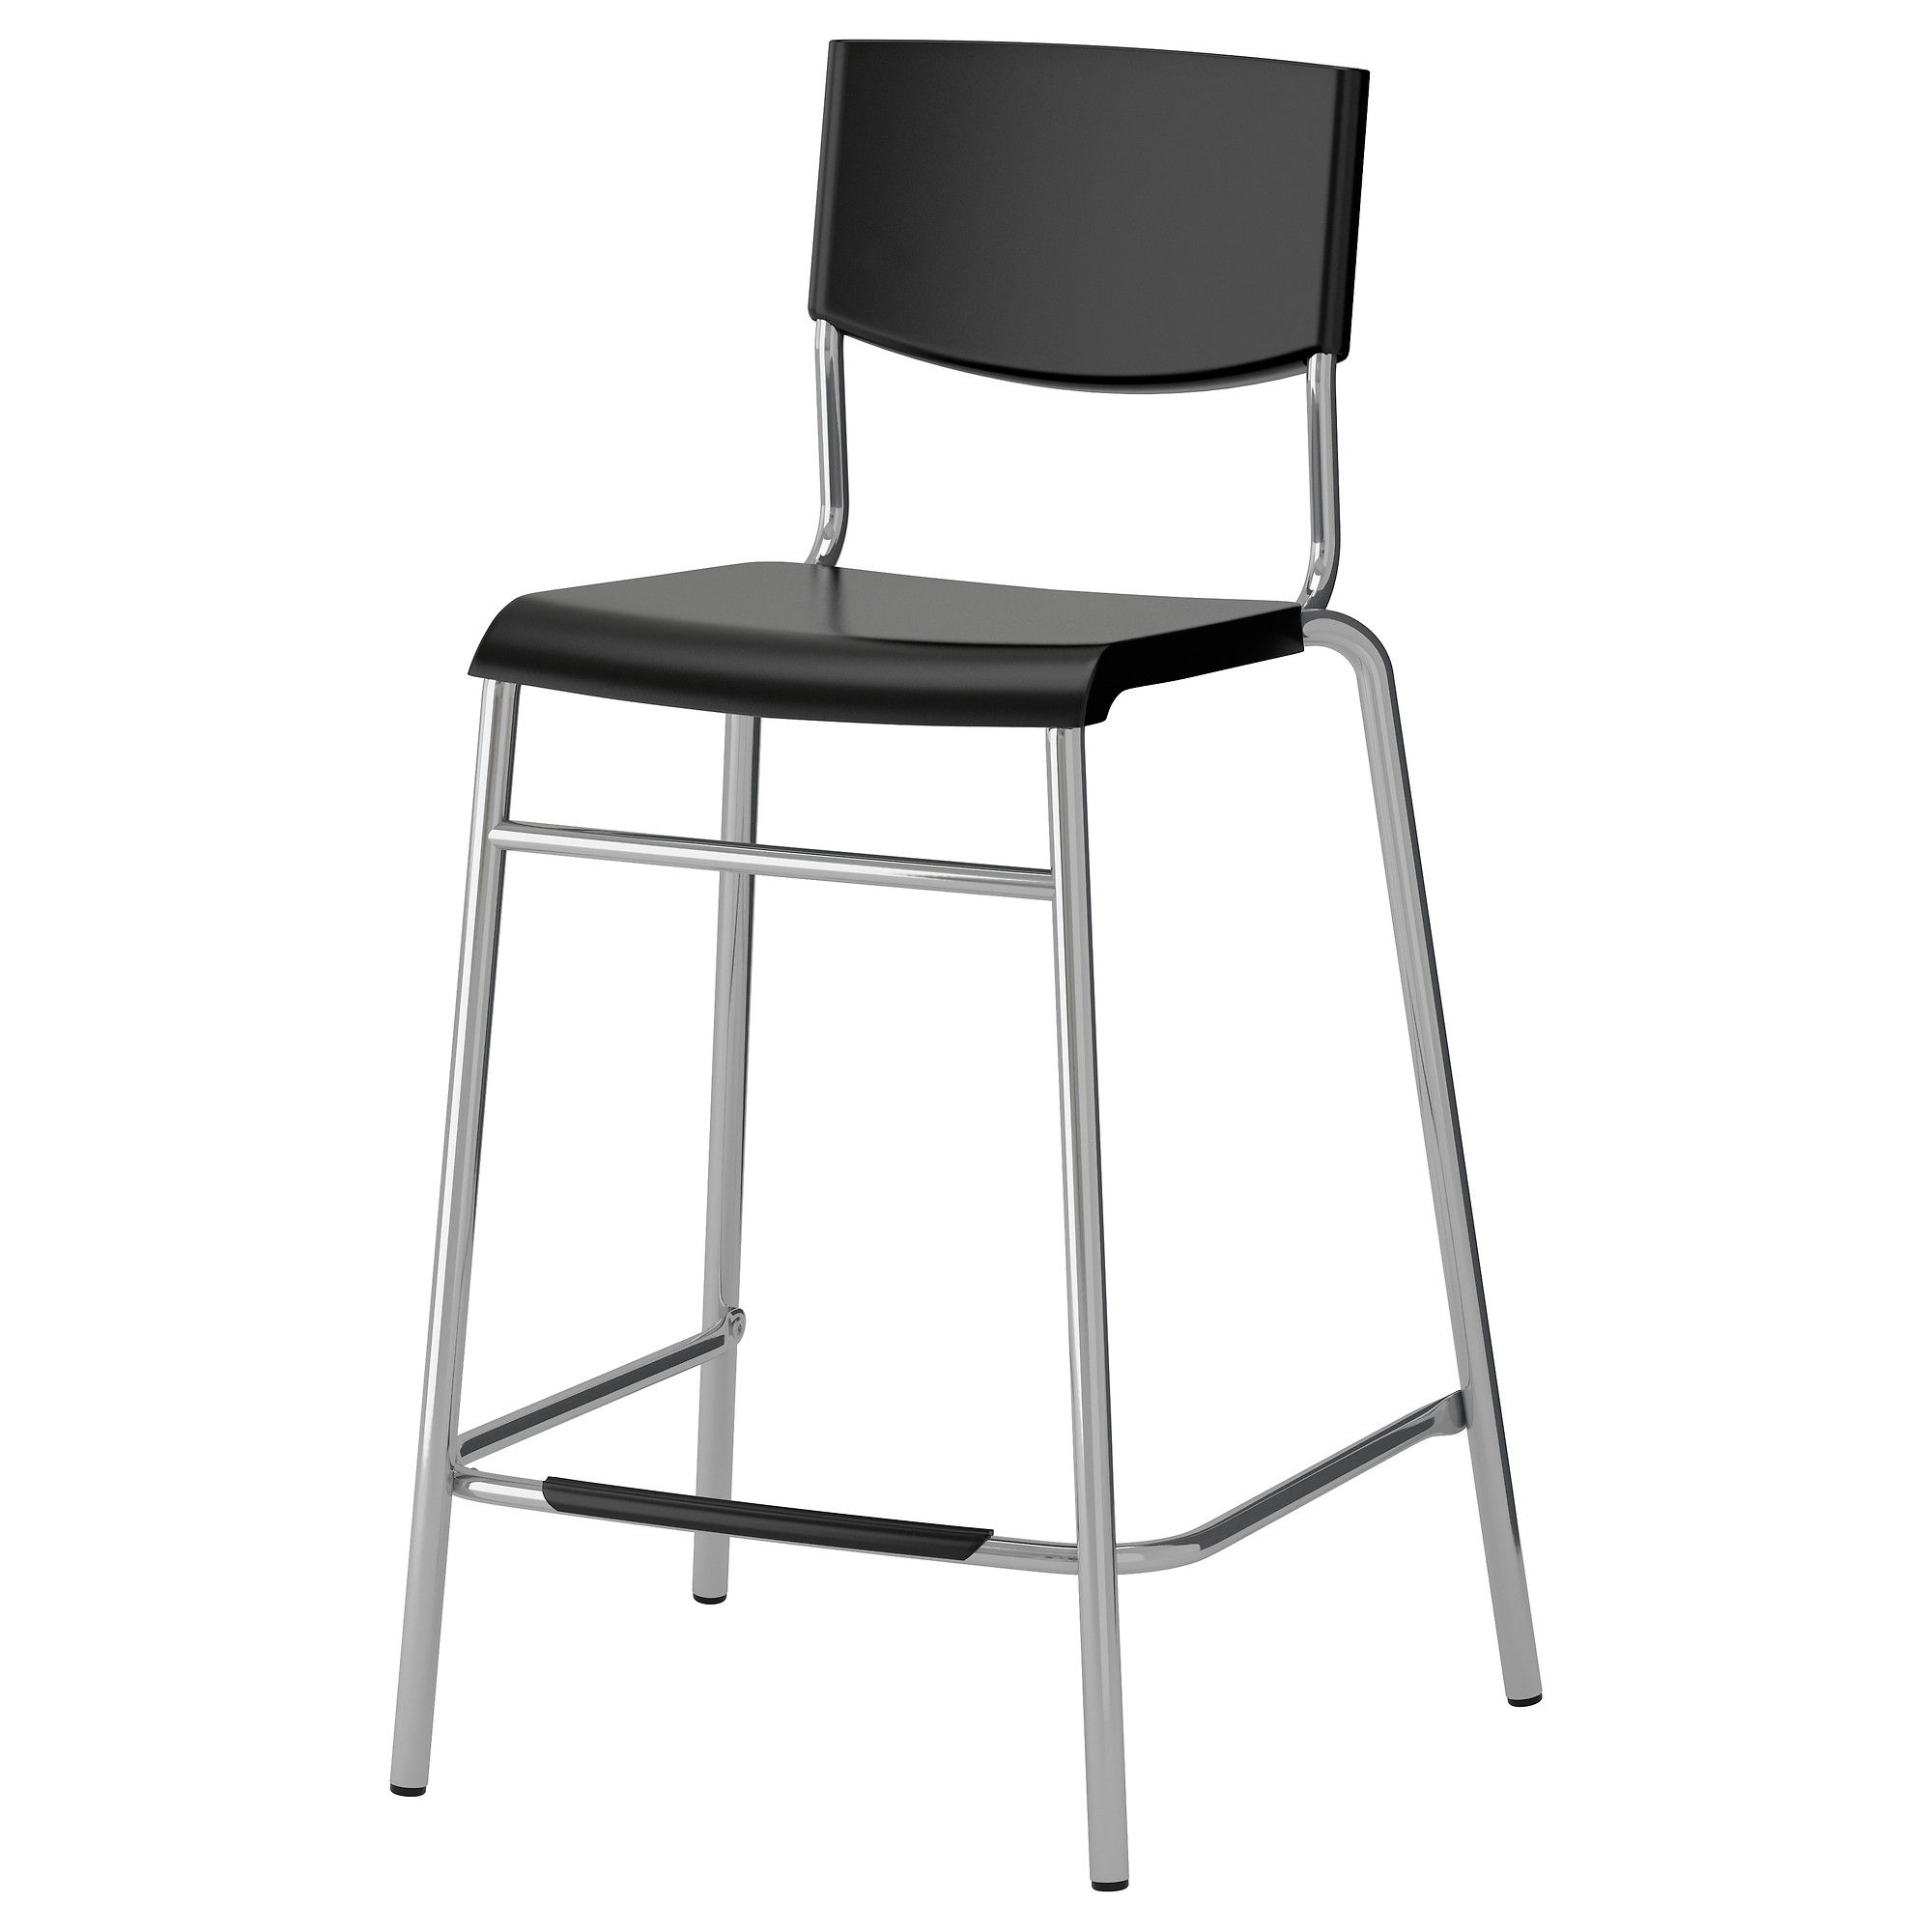 Surprising Ikea Stig Black Silver Color Bar Stool With Backrest New Gmtry Best Dining Table And Chair Ideas Images Gmtryco